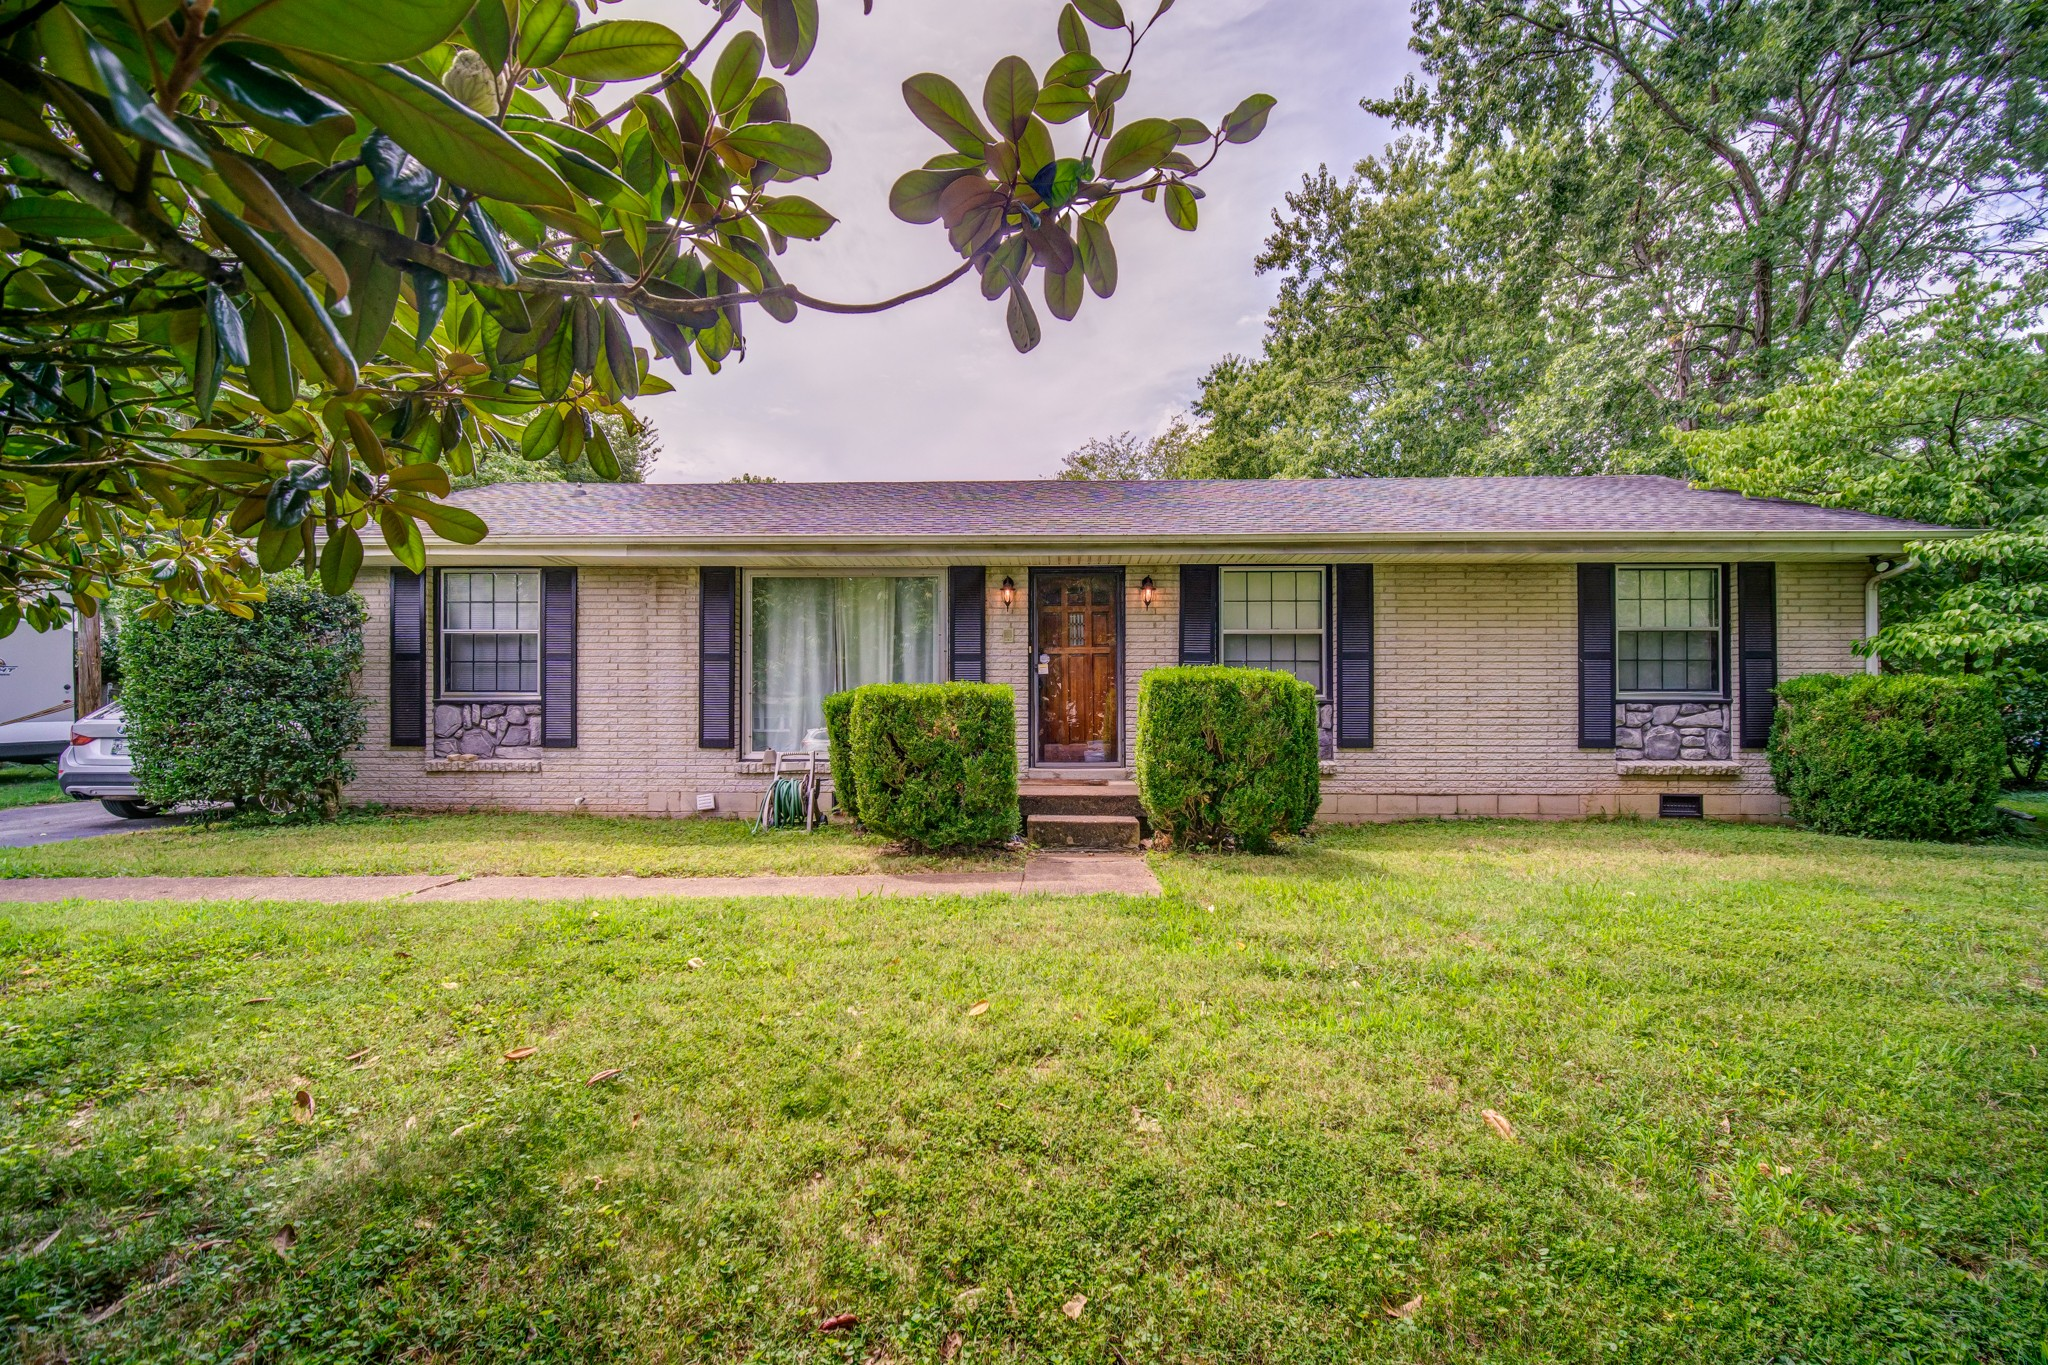 Located on a beautiful tree lined street just minutes from East Nashville is this charming ranch style home. It was recently renovated with a new roof & HVAC, as well as fresh carpet & flooring throughout. This mid-century modern gem also features a remodeled bathroom & a separate garage with a bonus room above it. If you're hunting for a blend of comfort, character & curb appeal, look no further.